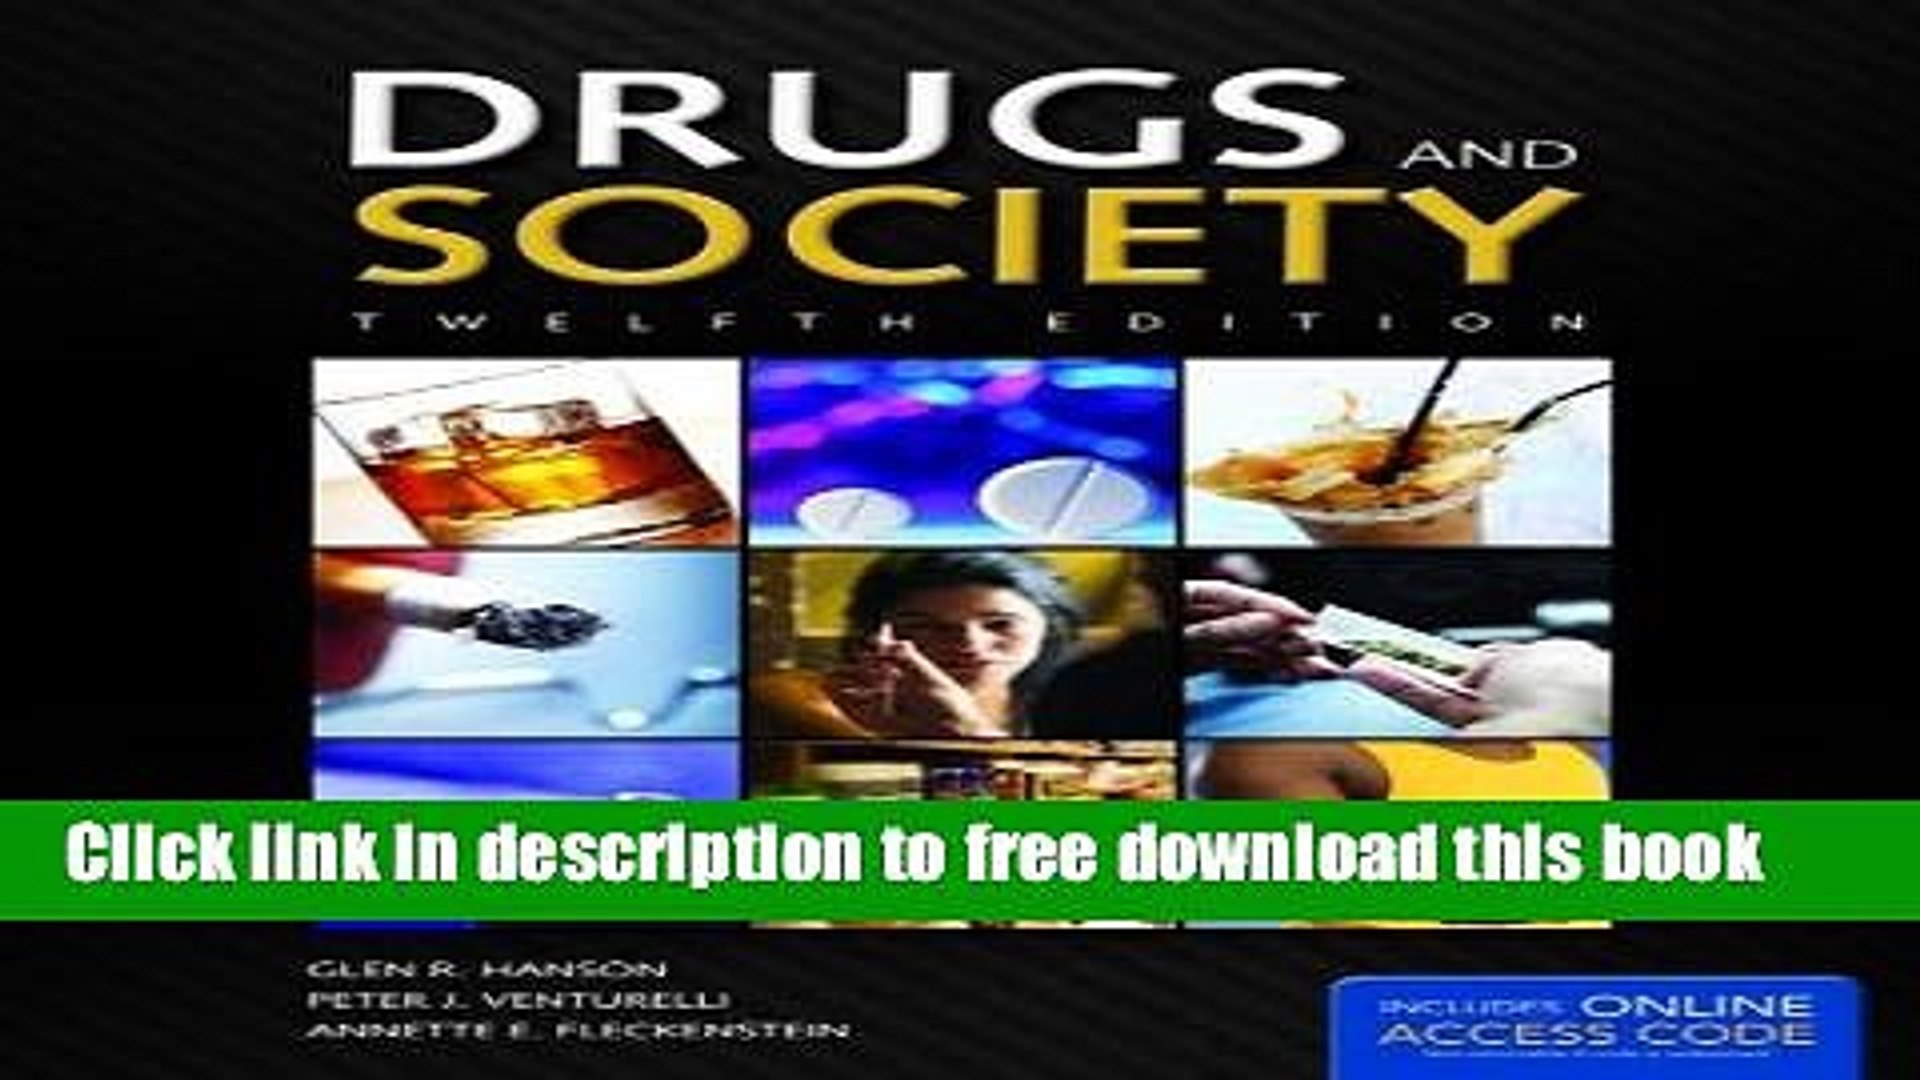 [Popular] Books Drugs And Society (Hanson, Drugs and Society) Free Online